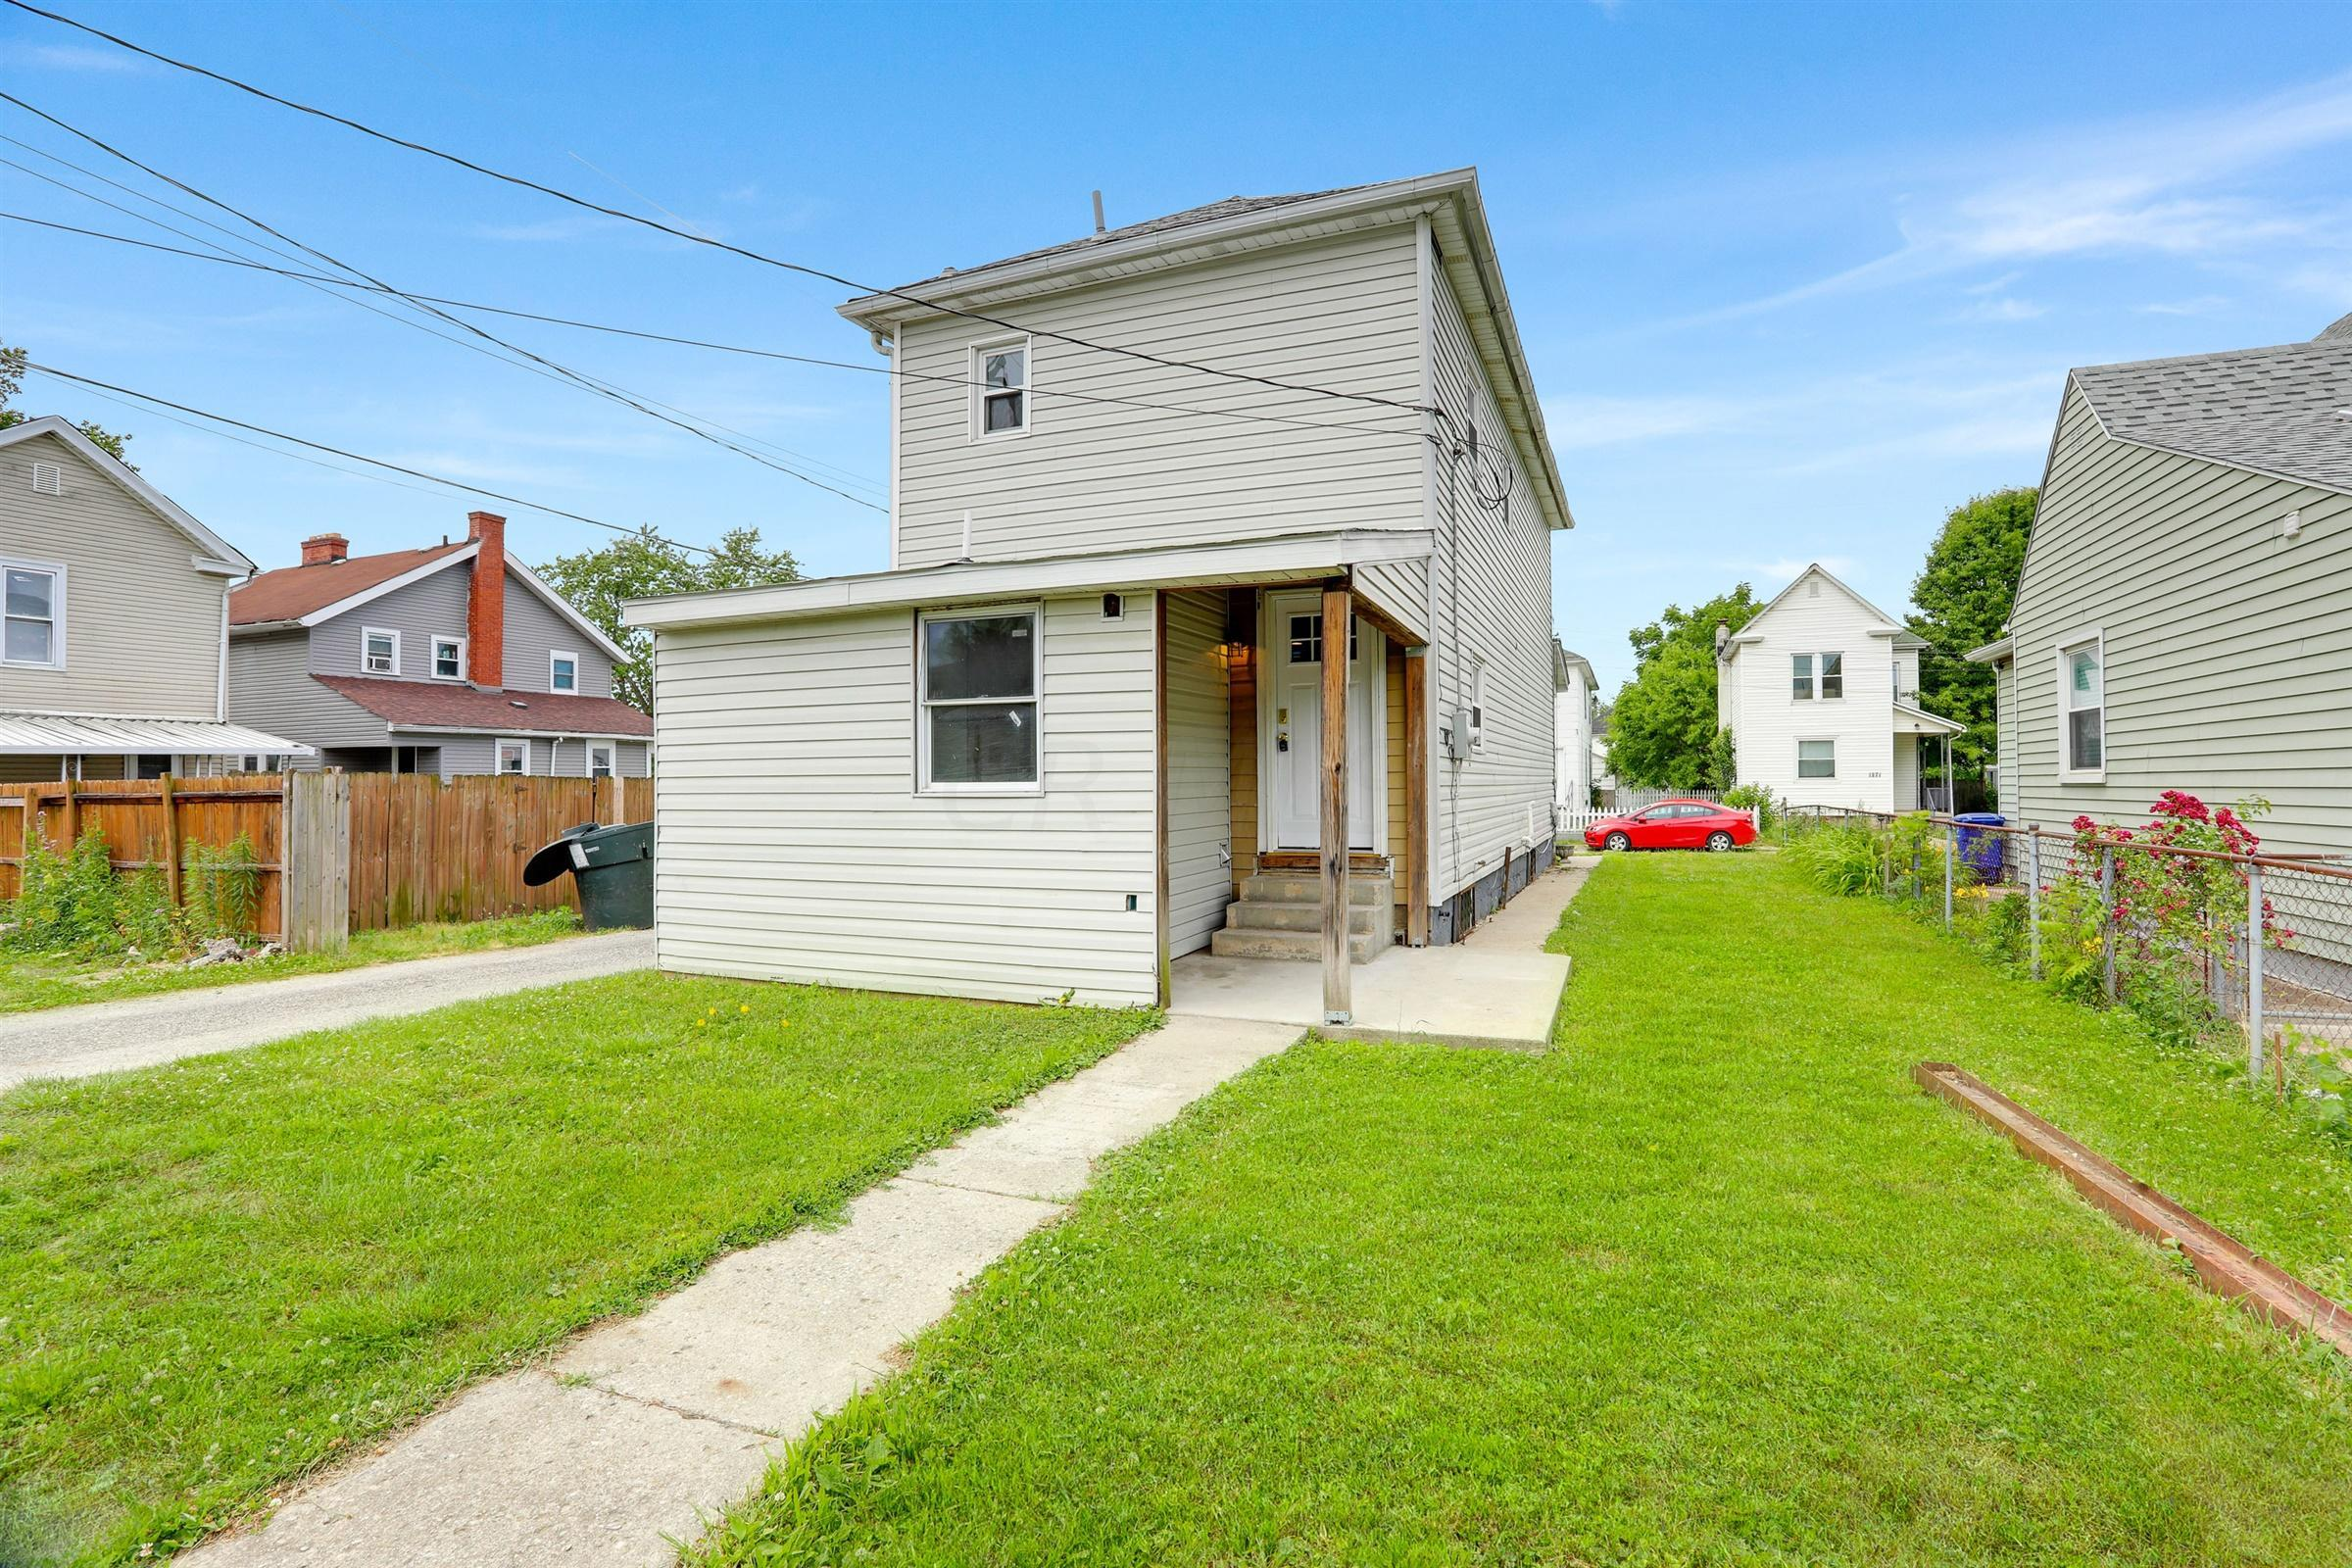 1276 Wager Street, Columbus, Ohio 43206, 3 Bedrooms Bedrooms, ,2 BathroomsBathrooms,Residential,For Sale,Wager,220019488